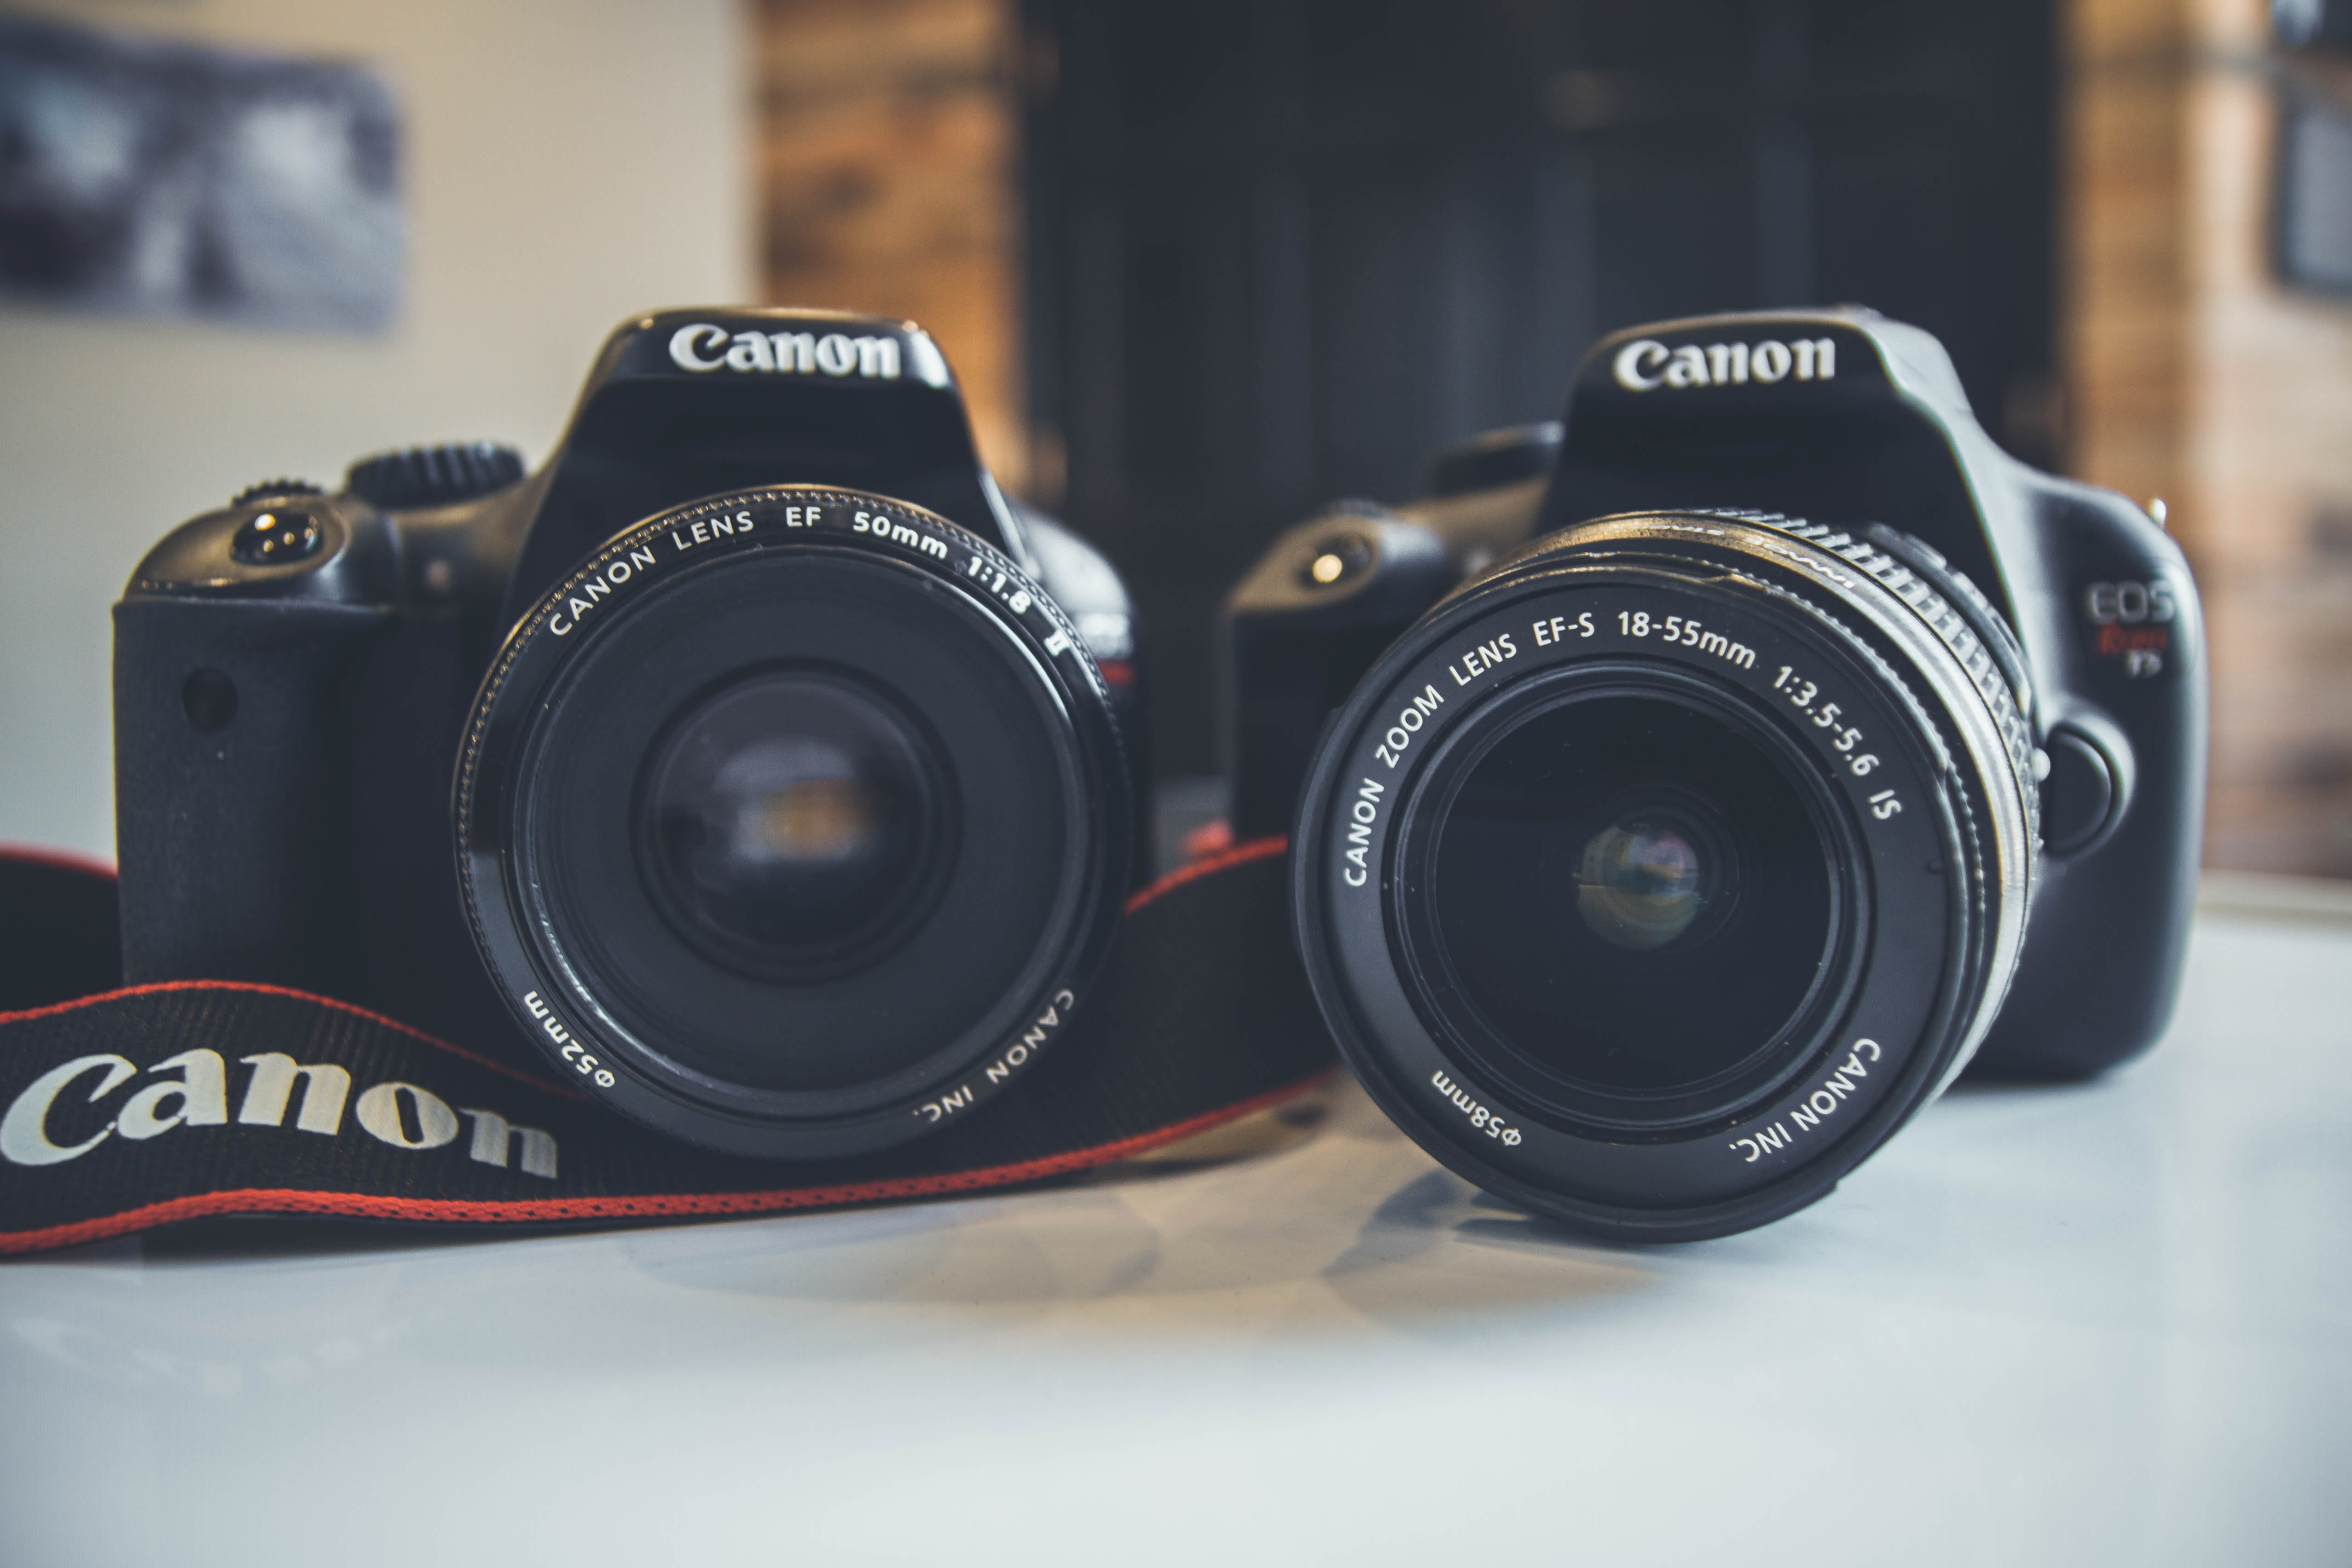 two Canon DSLR cameras side by side